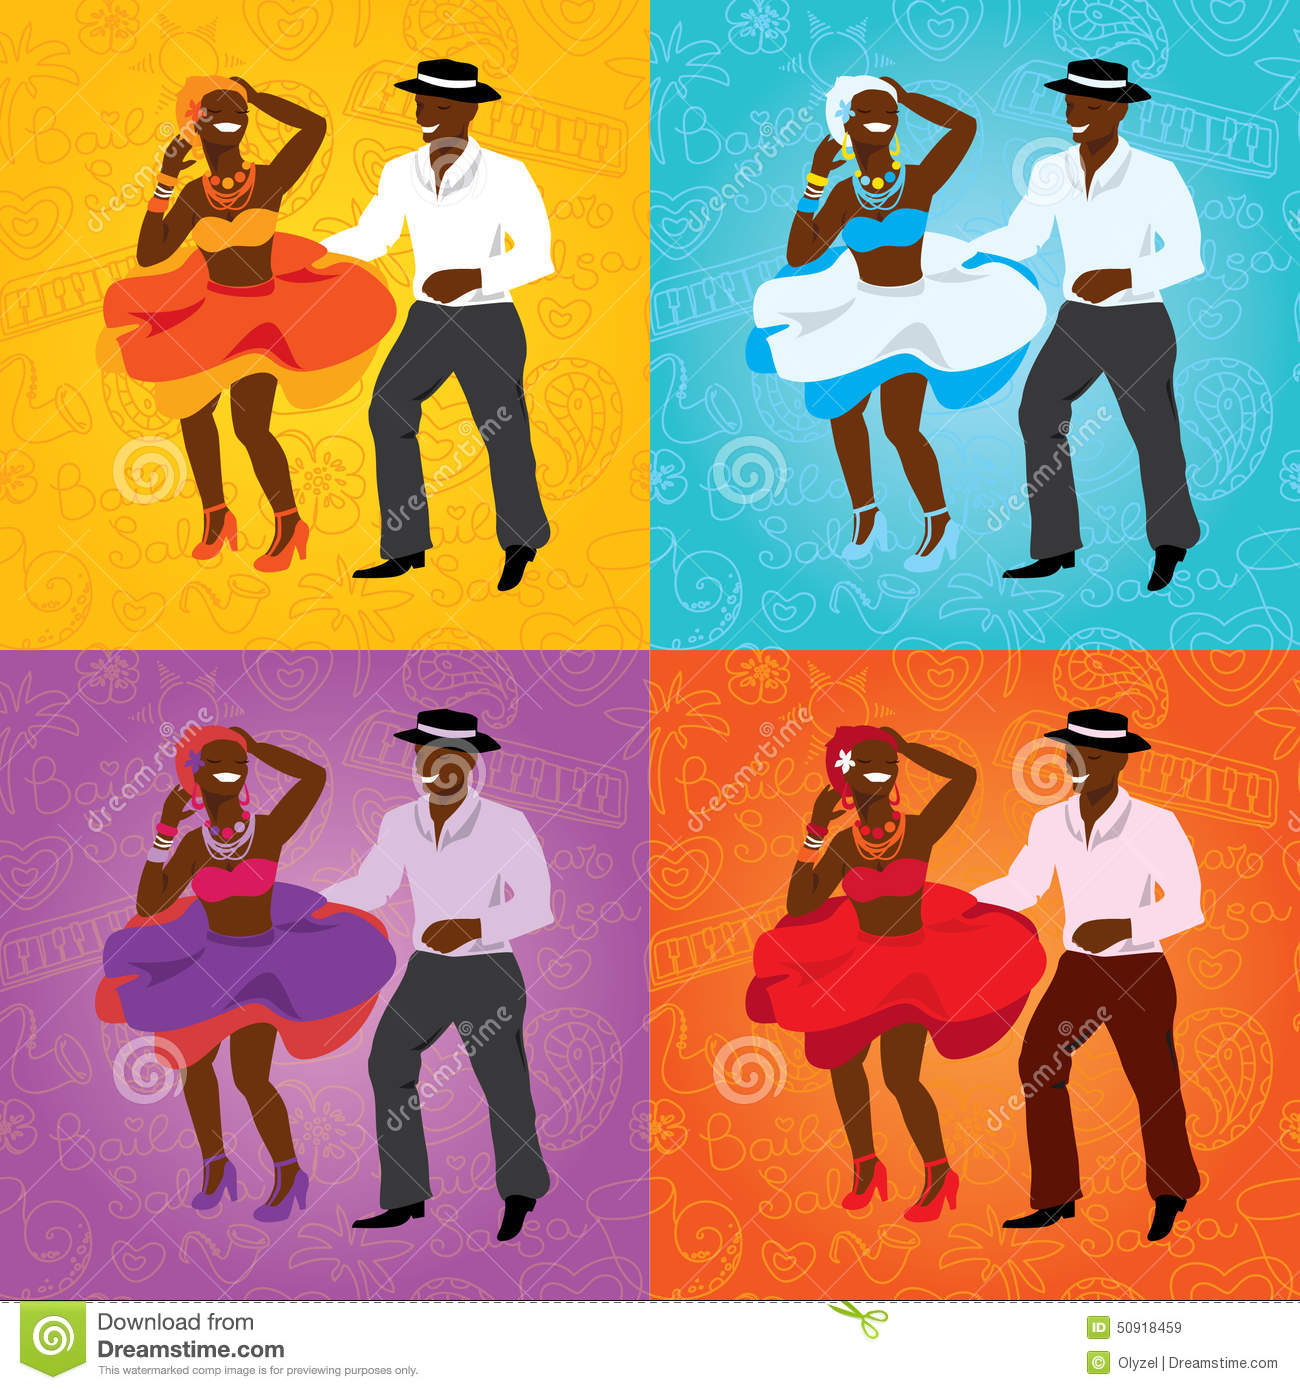 Salsa Dancing Poster For The Party  Cuban Couple, Palms, Musical